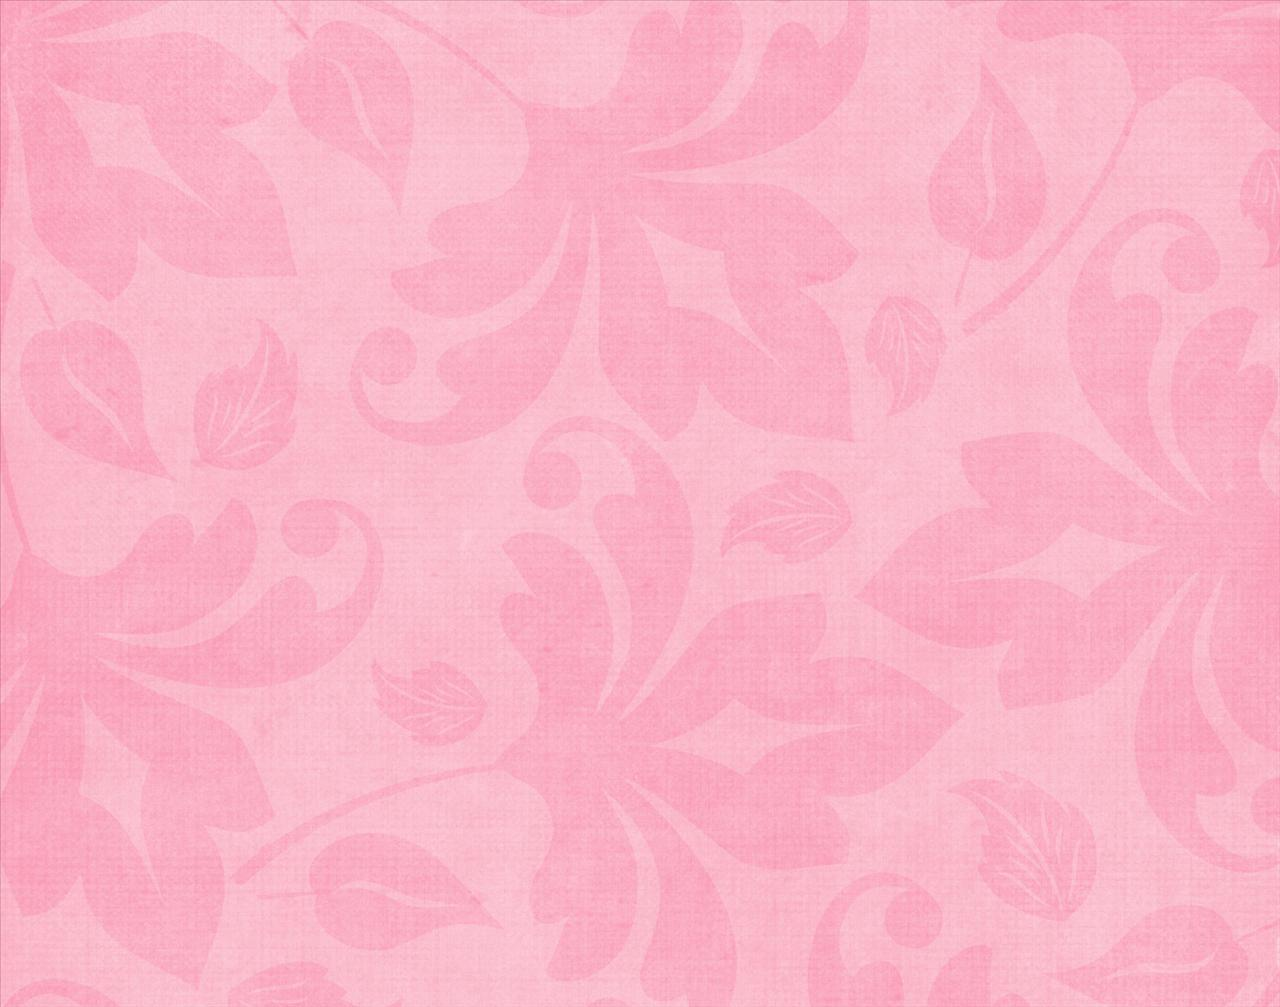 pink floral background jpg - photo #16